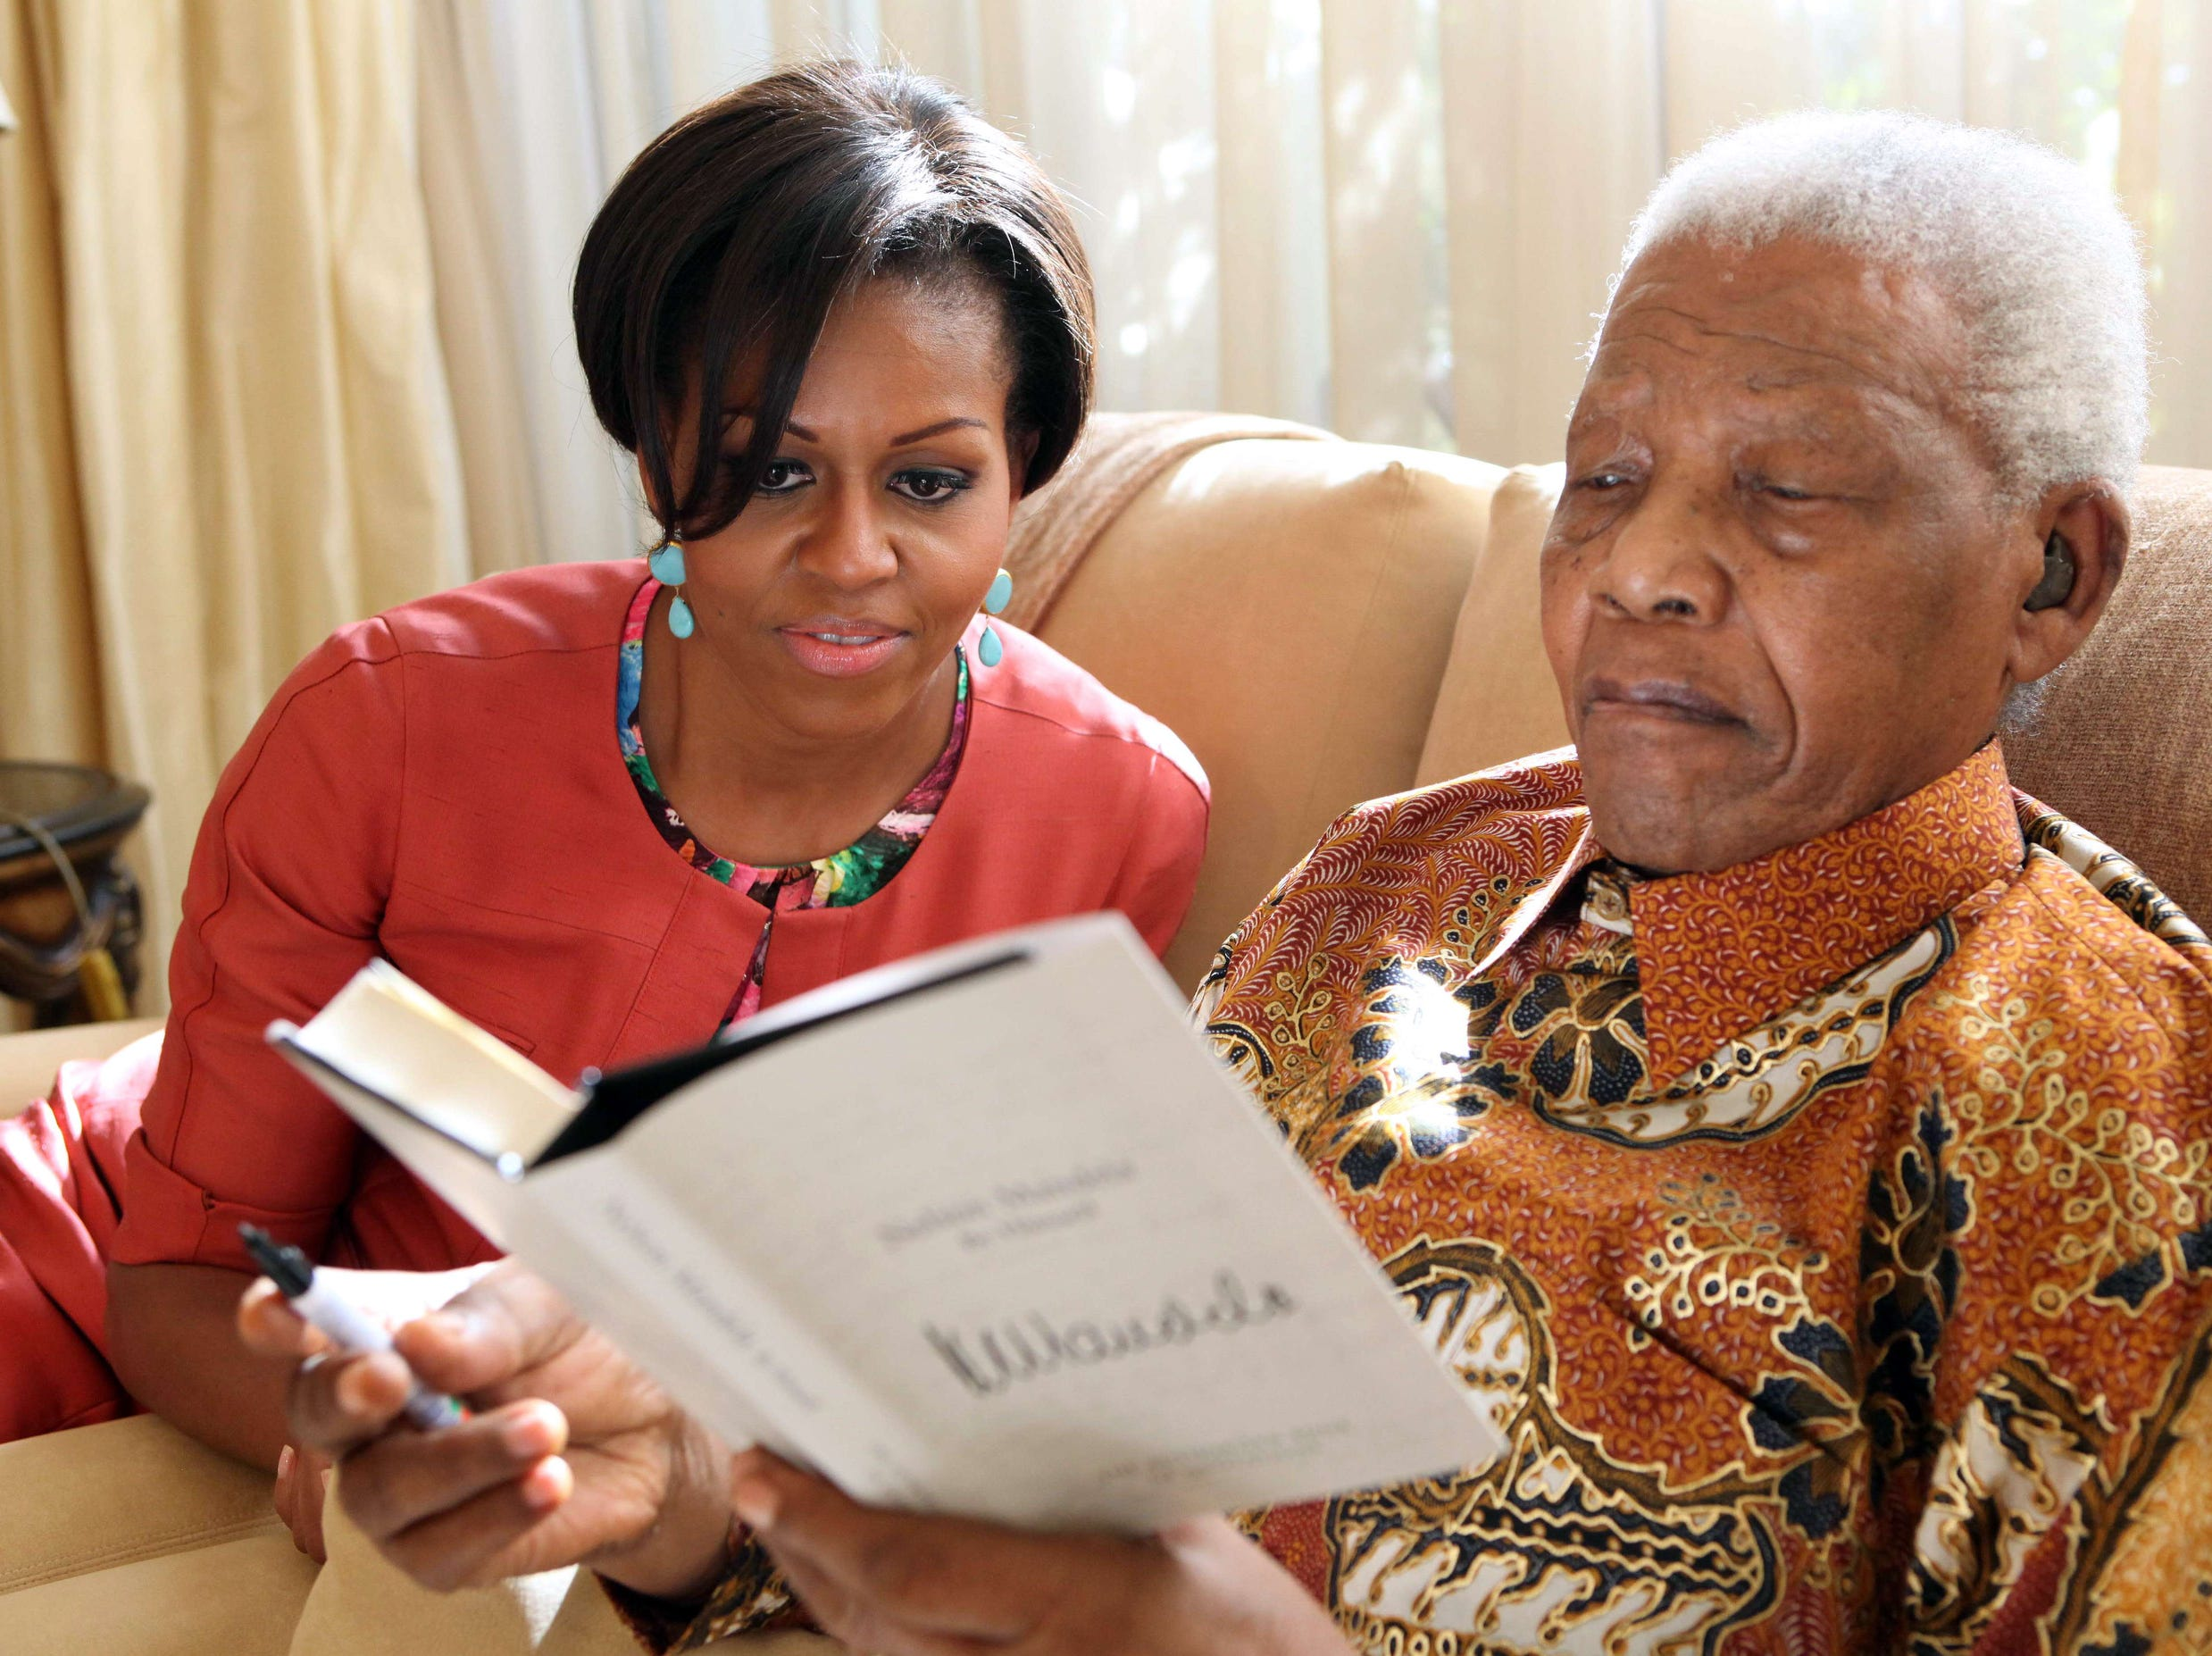 """RESTRICTED TO EDITORIAL USE - MANDATORY CREDIT """"AFP PHOTO / NELSON MANDELA FOUNDATION / DEBBIE YAZBEK"""" - NO MARKETING NO ADVERTISING CAMPAIGNS - DISTRIBUTED AS A SERVICE TO CLIENTS Handout photo provided by the Nelson Mandela Foundation shows former South African President Nelson Mandela (R) showing a book to US First Lady Michelle Obama at his home in Johannesburg on June 21, 2011. US First Lady Michelle Obama visited former South African president Nelson Mandela at his home on June 21 during the first full day of a six-day visit to southern Africa, his foundation said. Obama, who arrived in South Africa late June 20, visited Mandela's charitable foundation and archives Tuesday and took a tour with the Nobel Peace Prize winner's wife, the humanitarian and former Mozambican first lady Graca Machel.   AFP PHOTO / Debbie Yazbek/ Nelson Mandela FoundationDEBBIE YAZBEK/AFP/Getty Images ORG XMIT: - ORIG FILE ID: 521136023"""